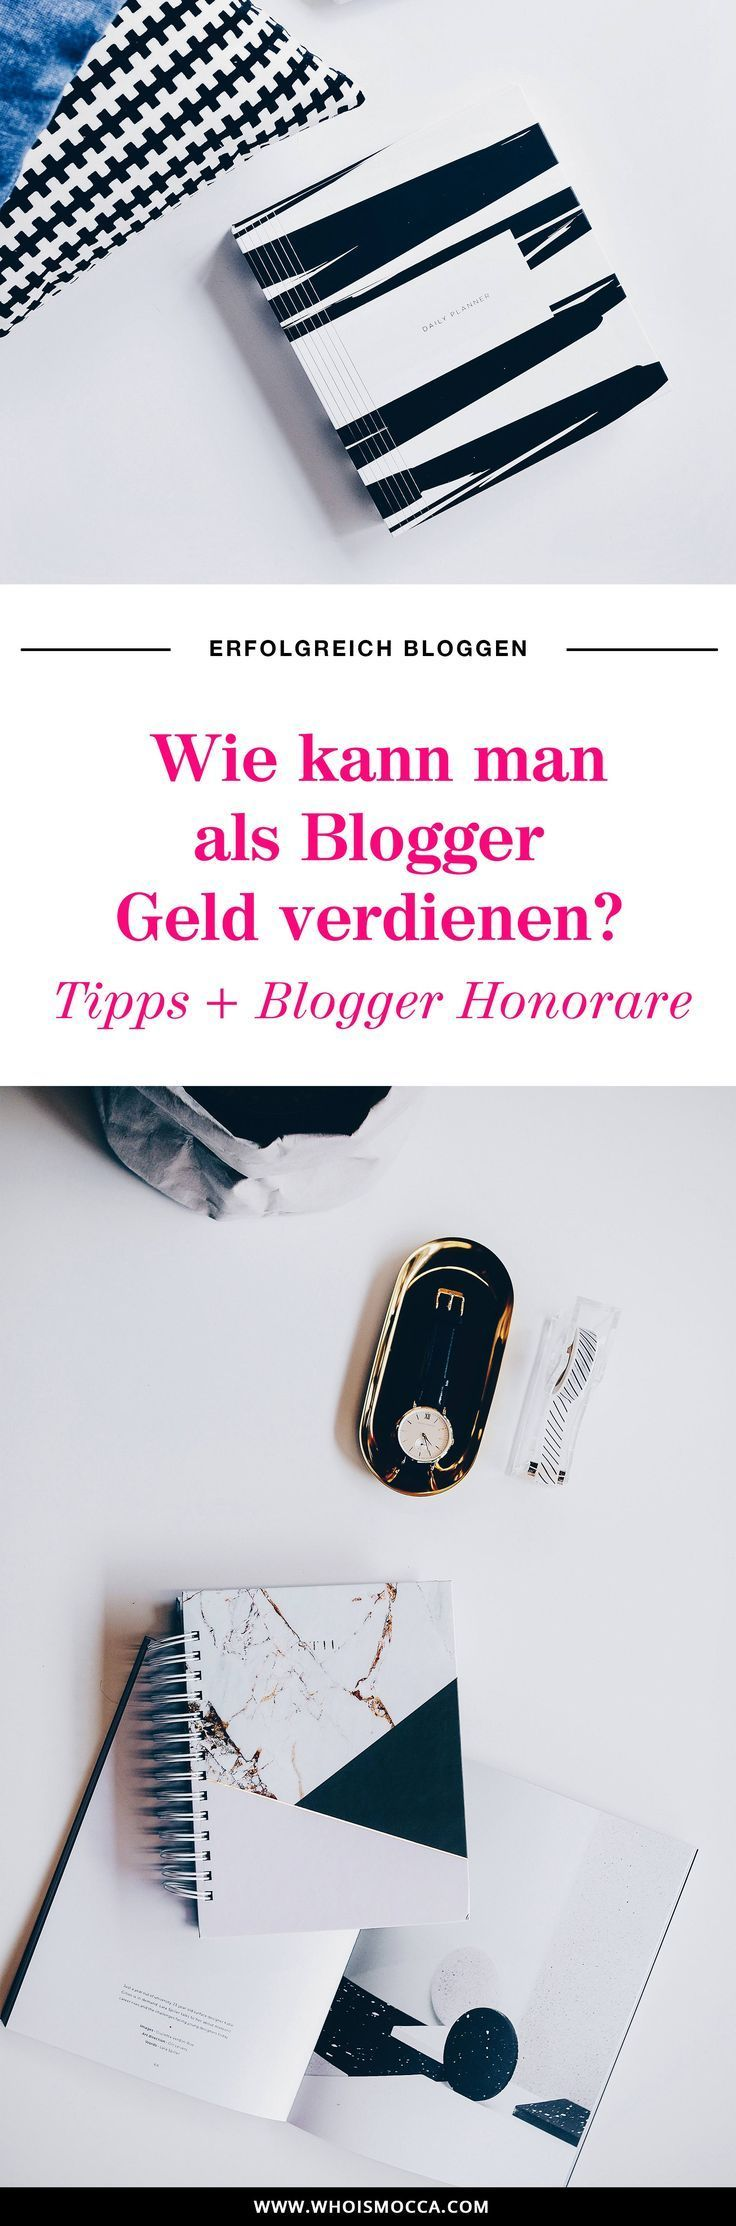 mit bloggen geld verdienen und preise kalkulieren authentizit t als blogger pinterest. Black Bedroom Furniture Sets. Home Design Ideas